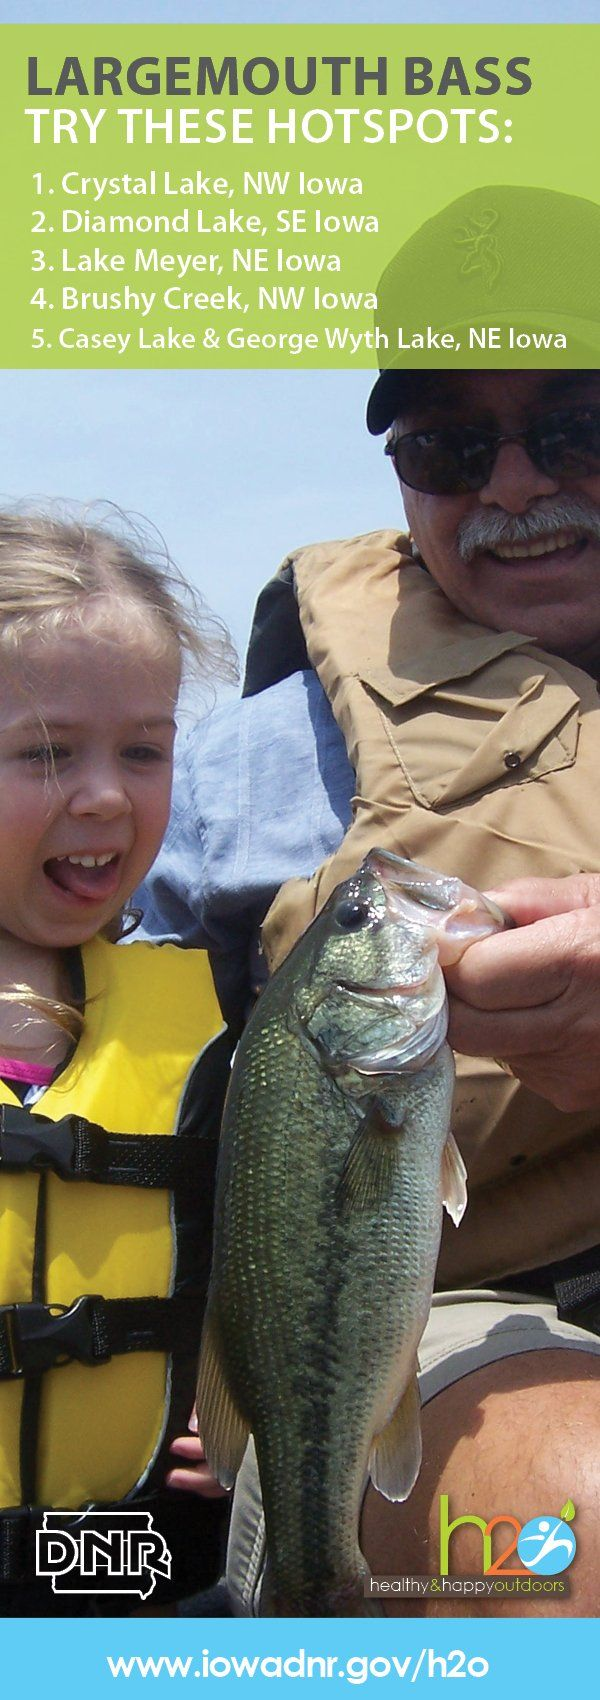 Five great Iowa spots for largemouth bass.